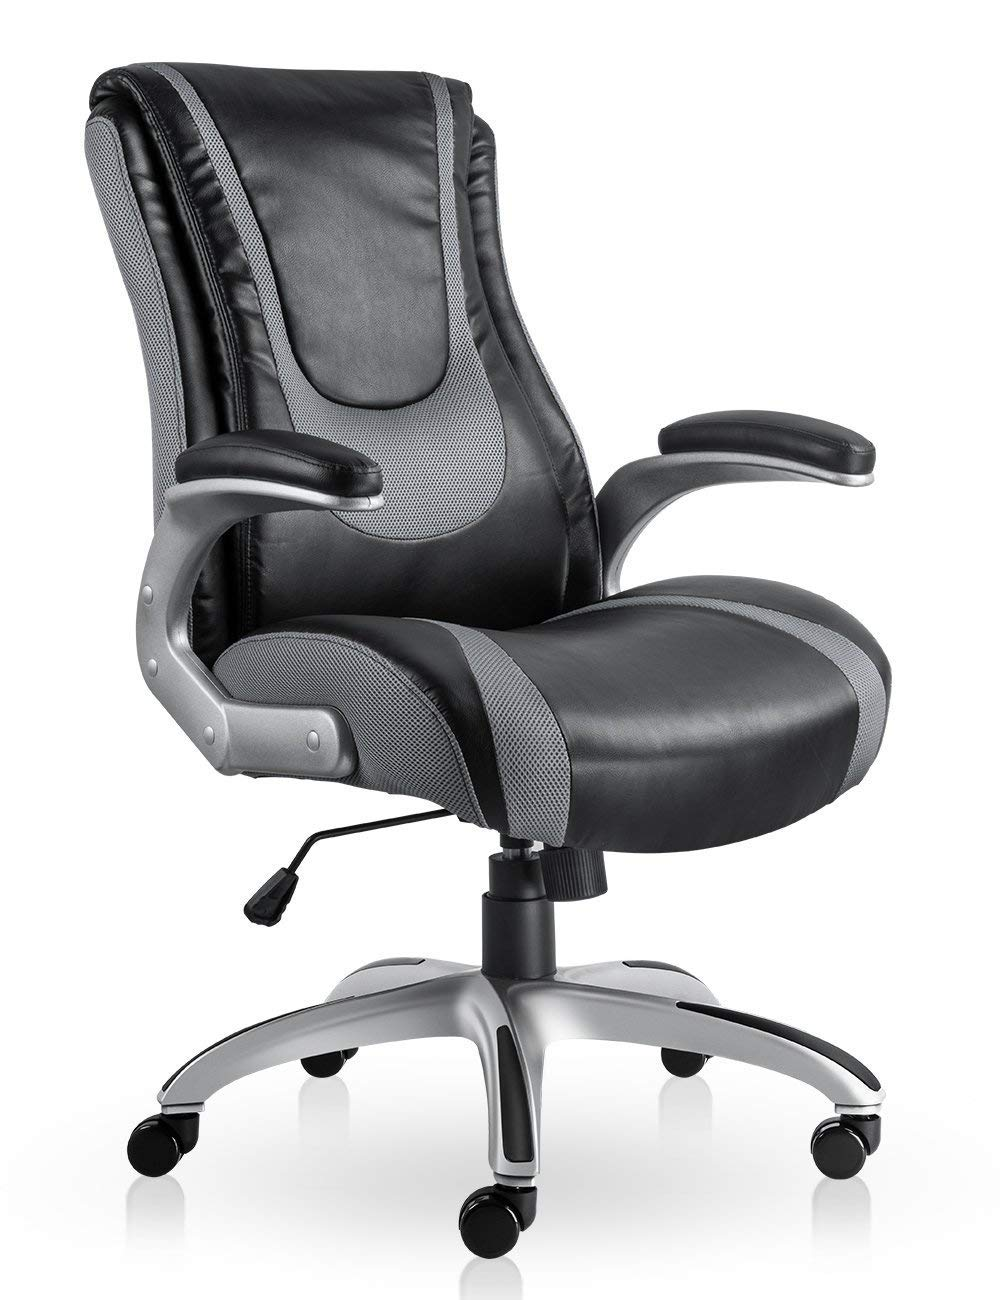 High Back Executive Office Chair Ergonomic Home Office Chair Managerial Bonded Leather Chair Thick Cushion Support (Black+Gray) by SmugOffice